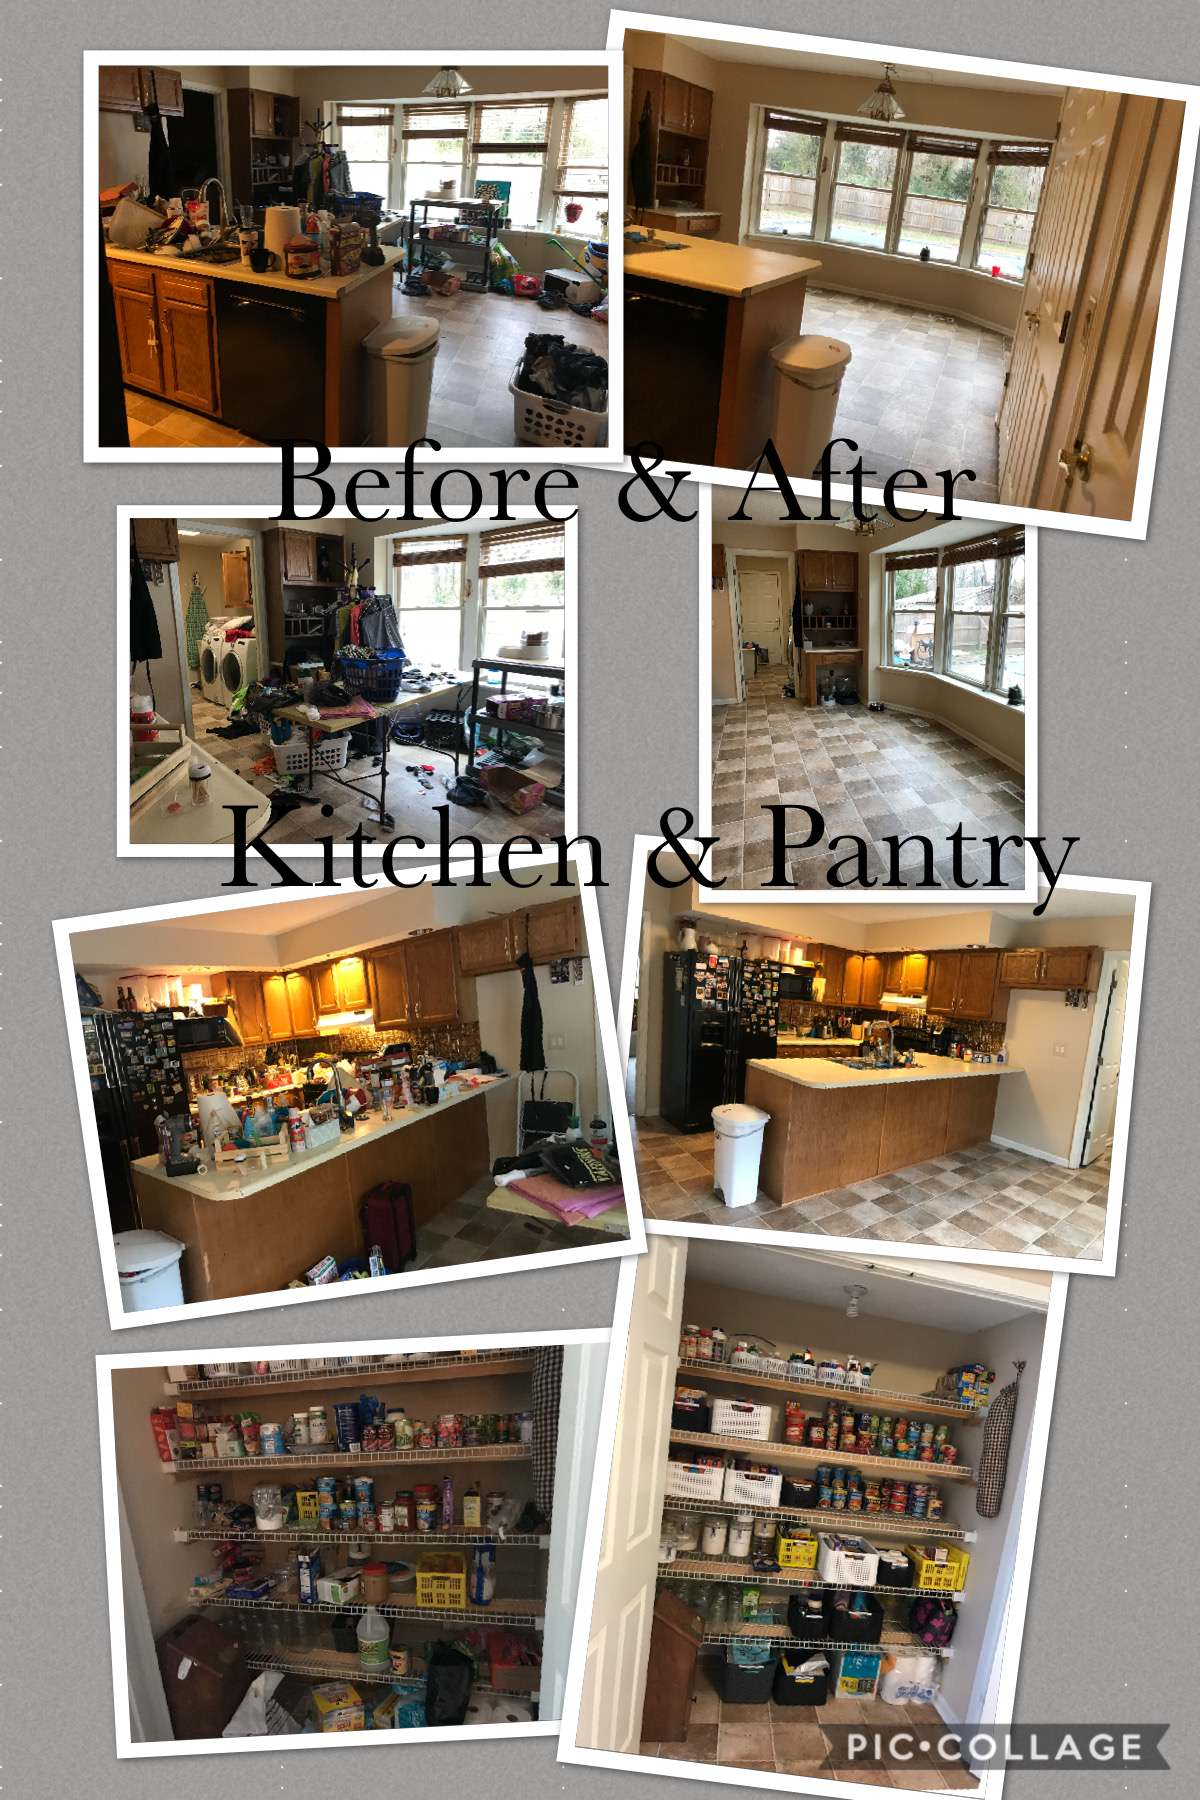 Kitchen and Pantry before and after